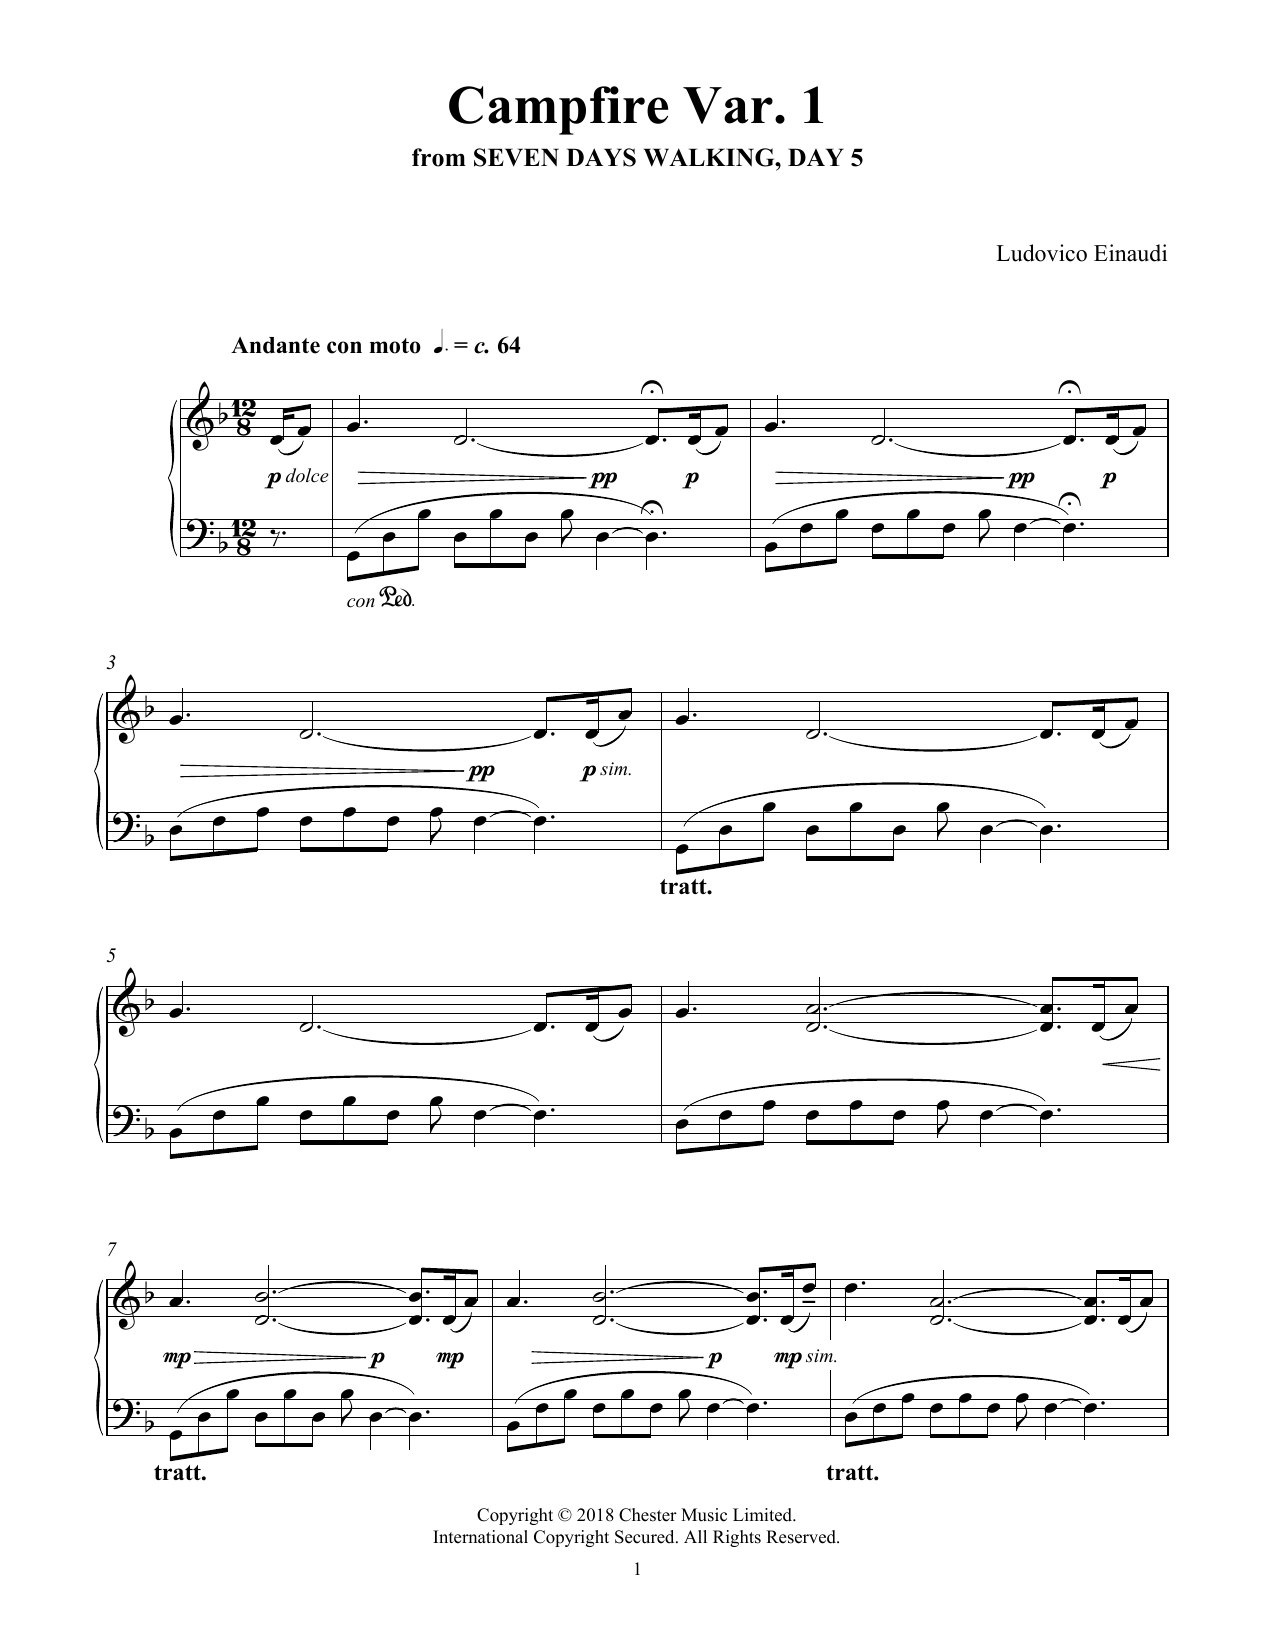 Ludovico Einaudi Campfire Var. 1 (from Seven Days Walking: Day 5) sheet music notes and chords. Download Printable PDF.